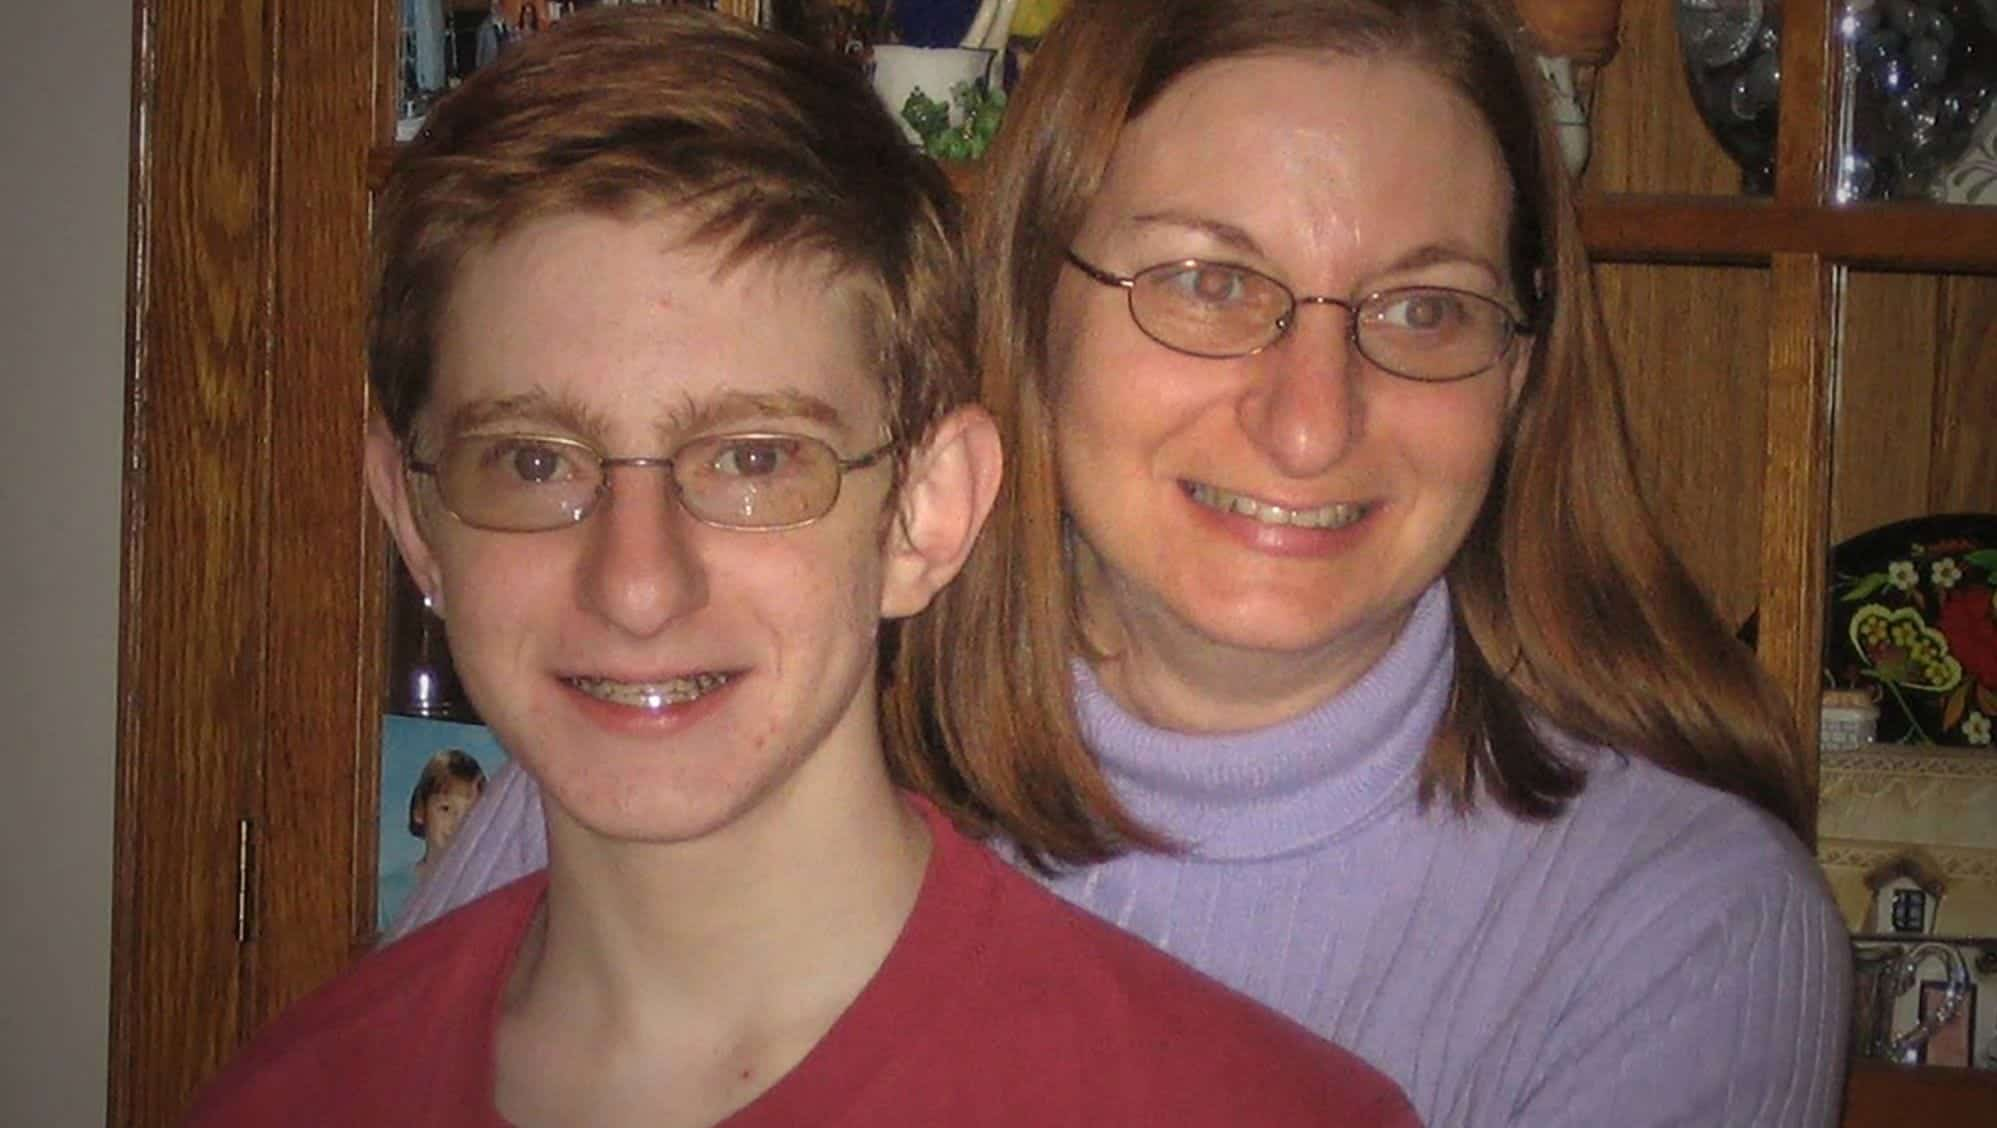 10 years after Tyler Clementi's suicide, mom says no LGBTQ person should feel unworthy